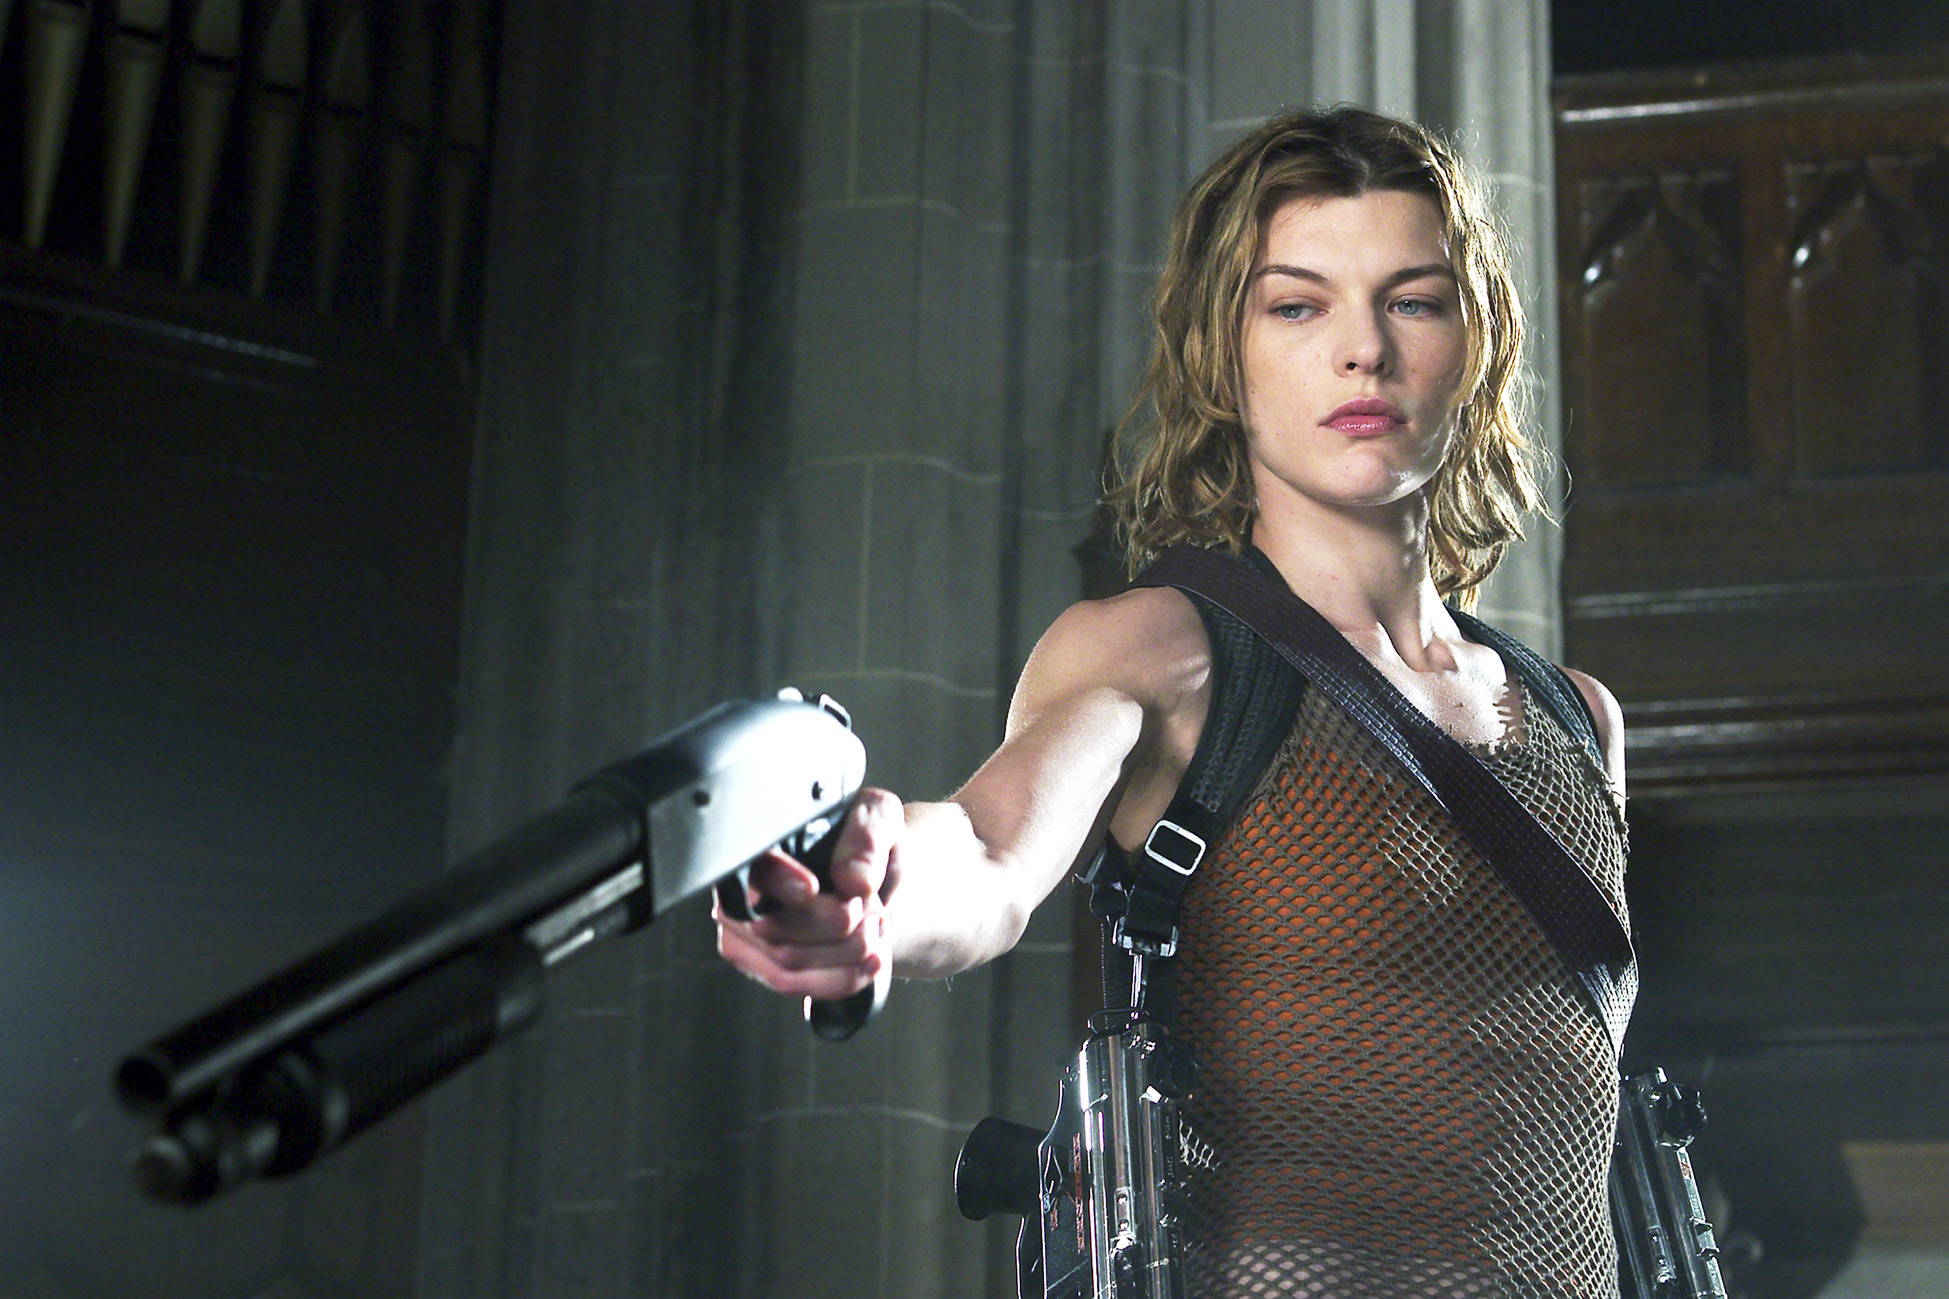 Milla Jovovich 'in talks for The Expendables 3'